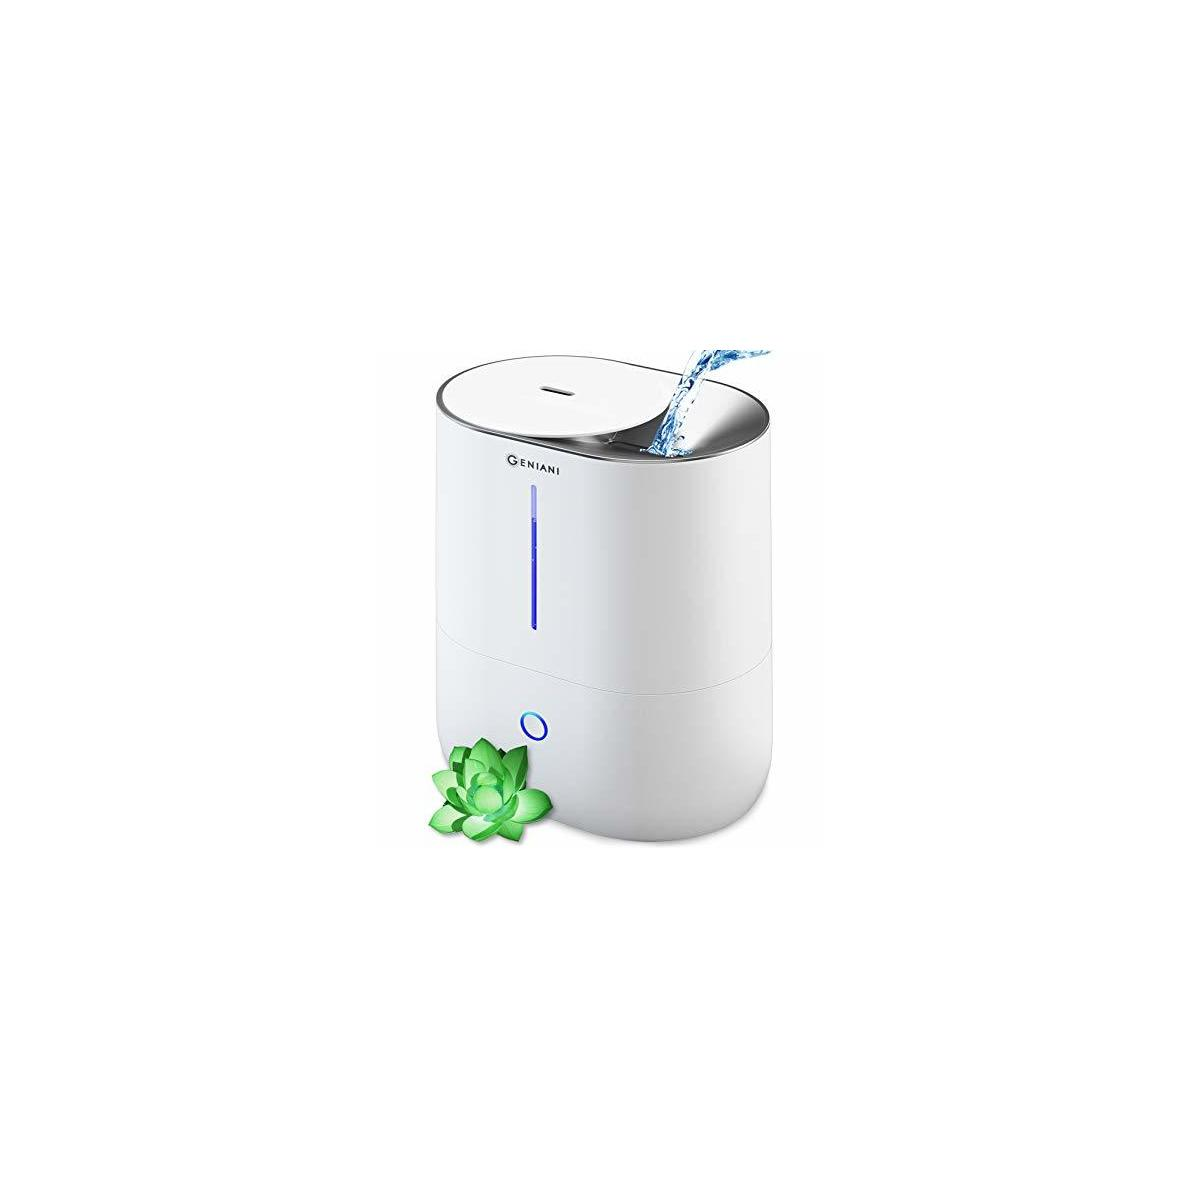 GENIANI Top Fill Cool Mist Humidifiers for Bedroom & Essential Oil Diffuser - Smart Aroma Ultrasonic Humidifier for Home, Baby, Large Room with Auto Shut Off, 4L Easy to Clean Water Tank (White)